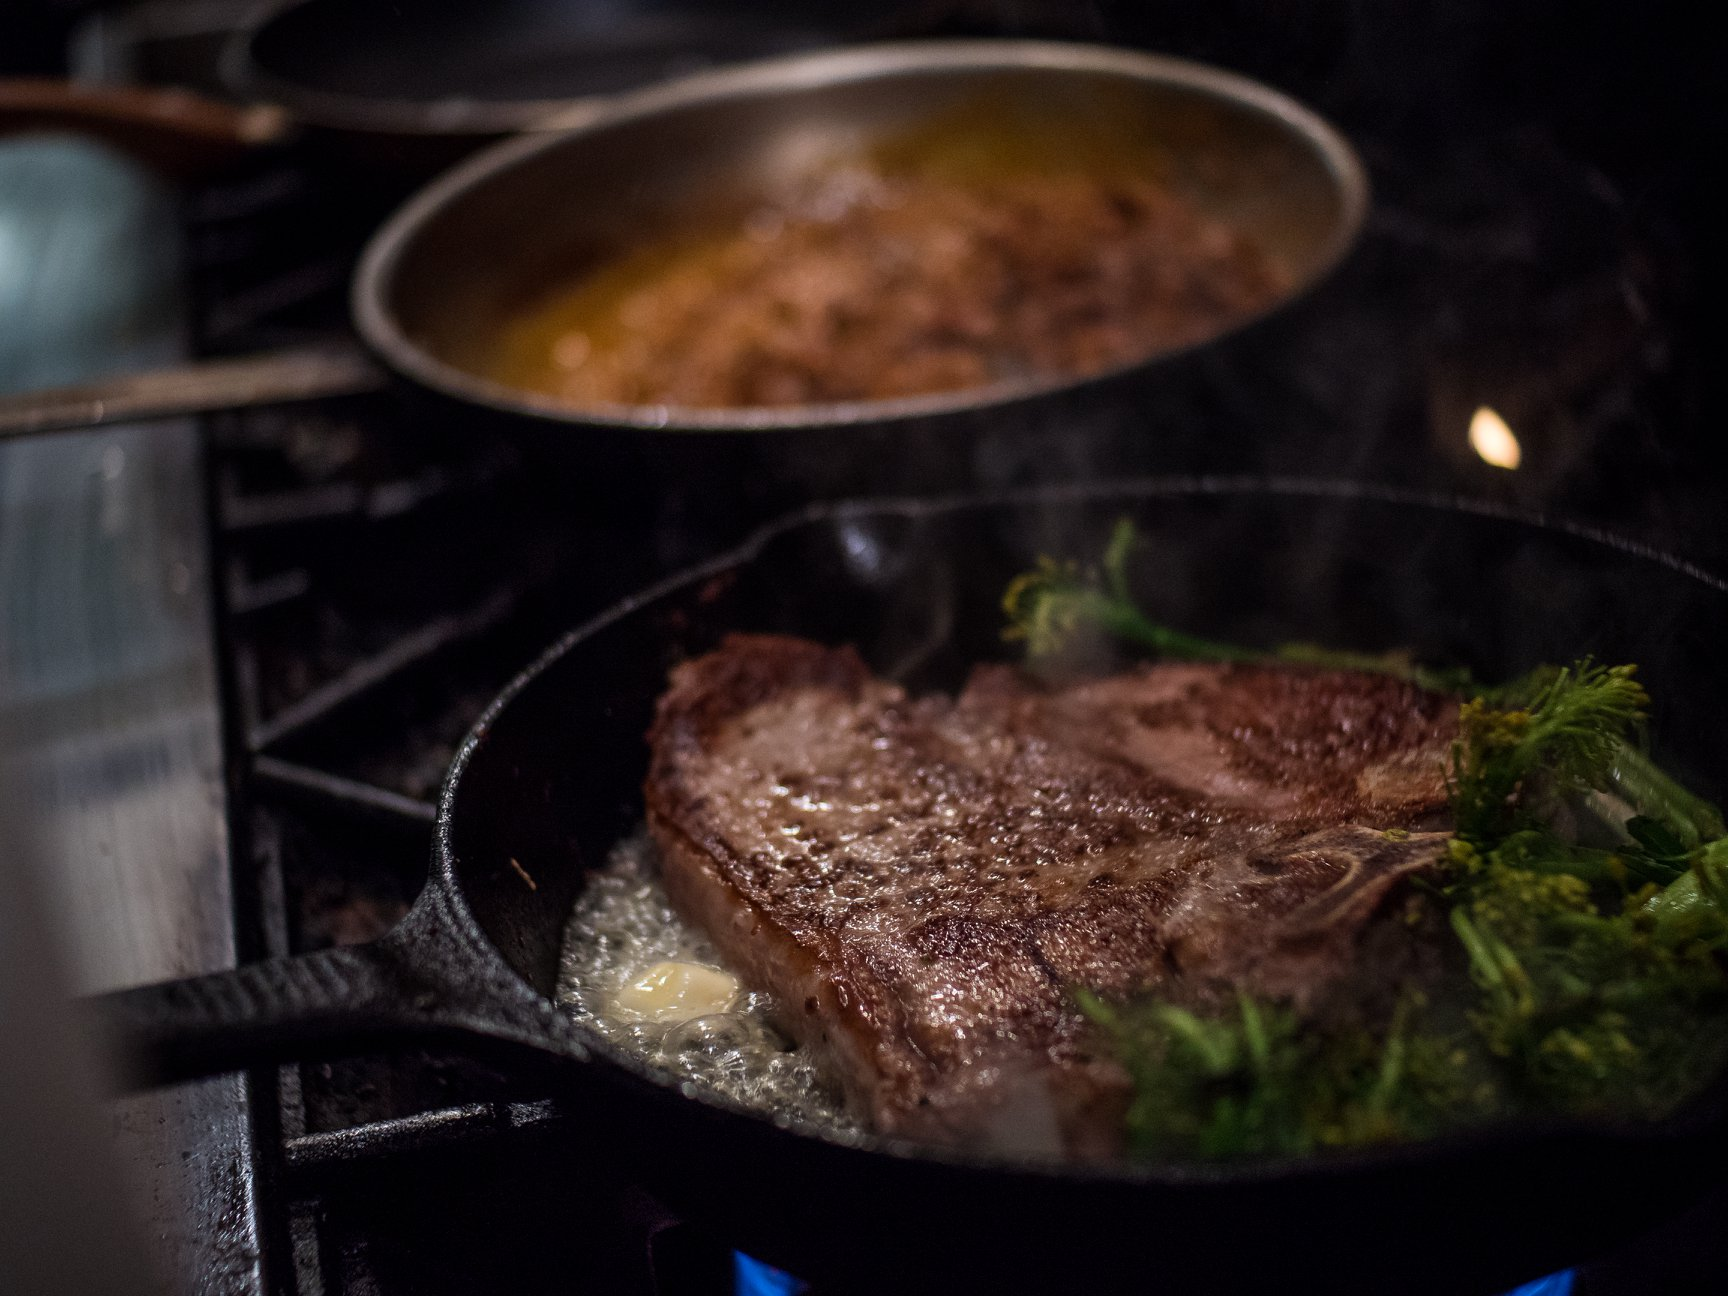 porterhouse steak on a sizzling pan with butter and seasonings.